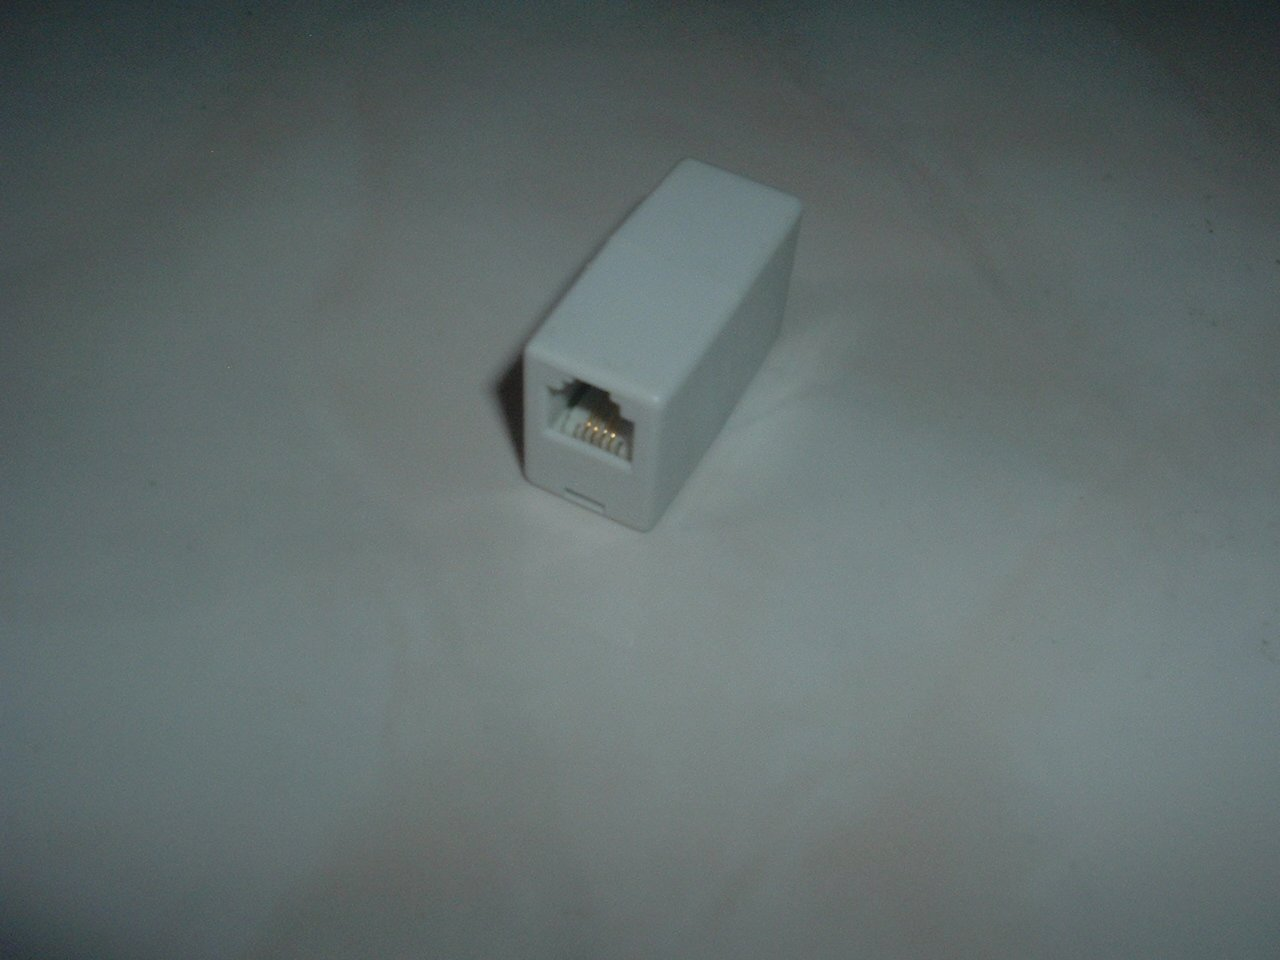 Phone wire jack coupler